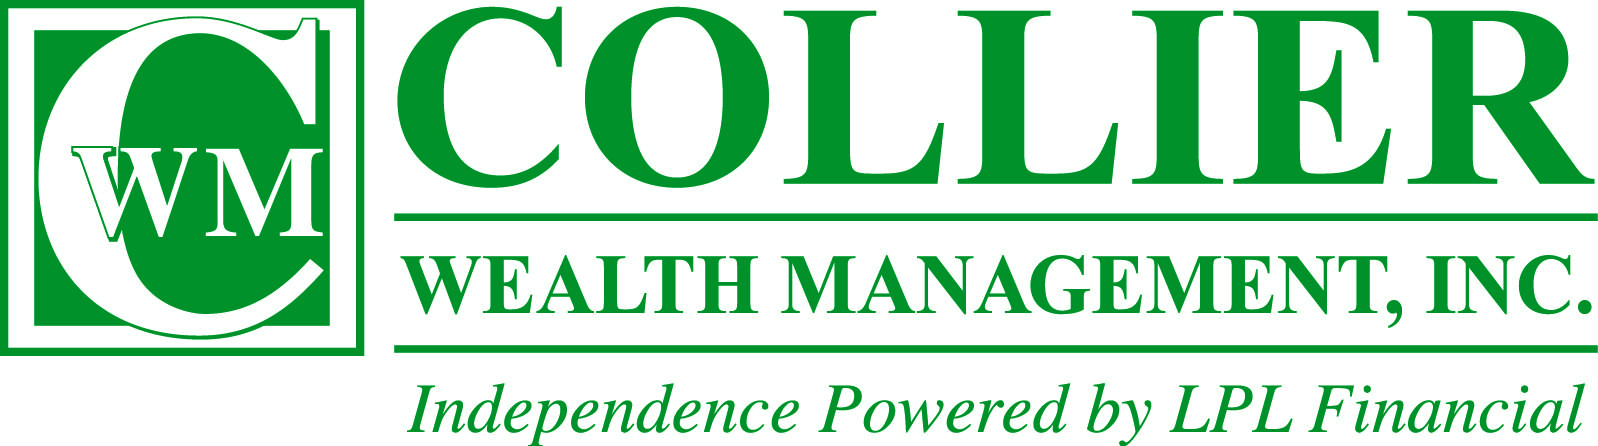 Logo for Collier Wealth Management